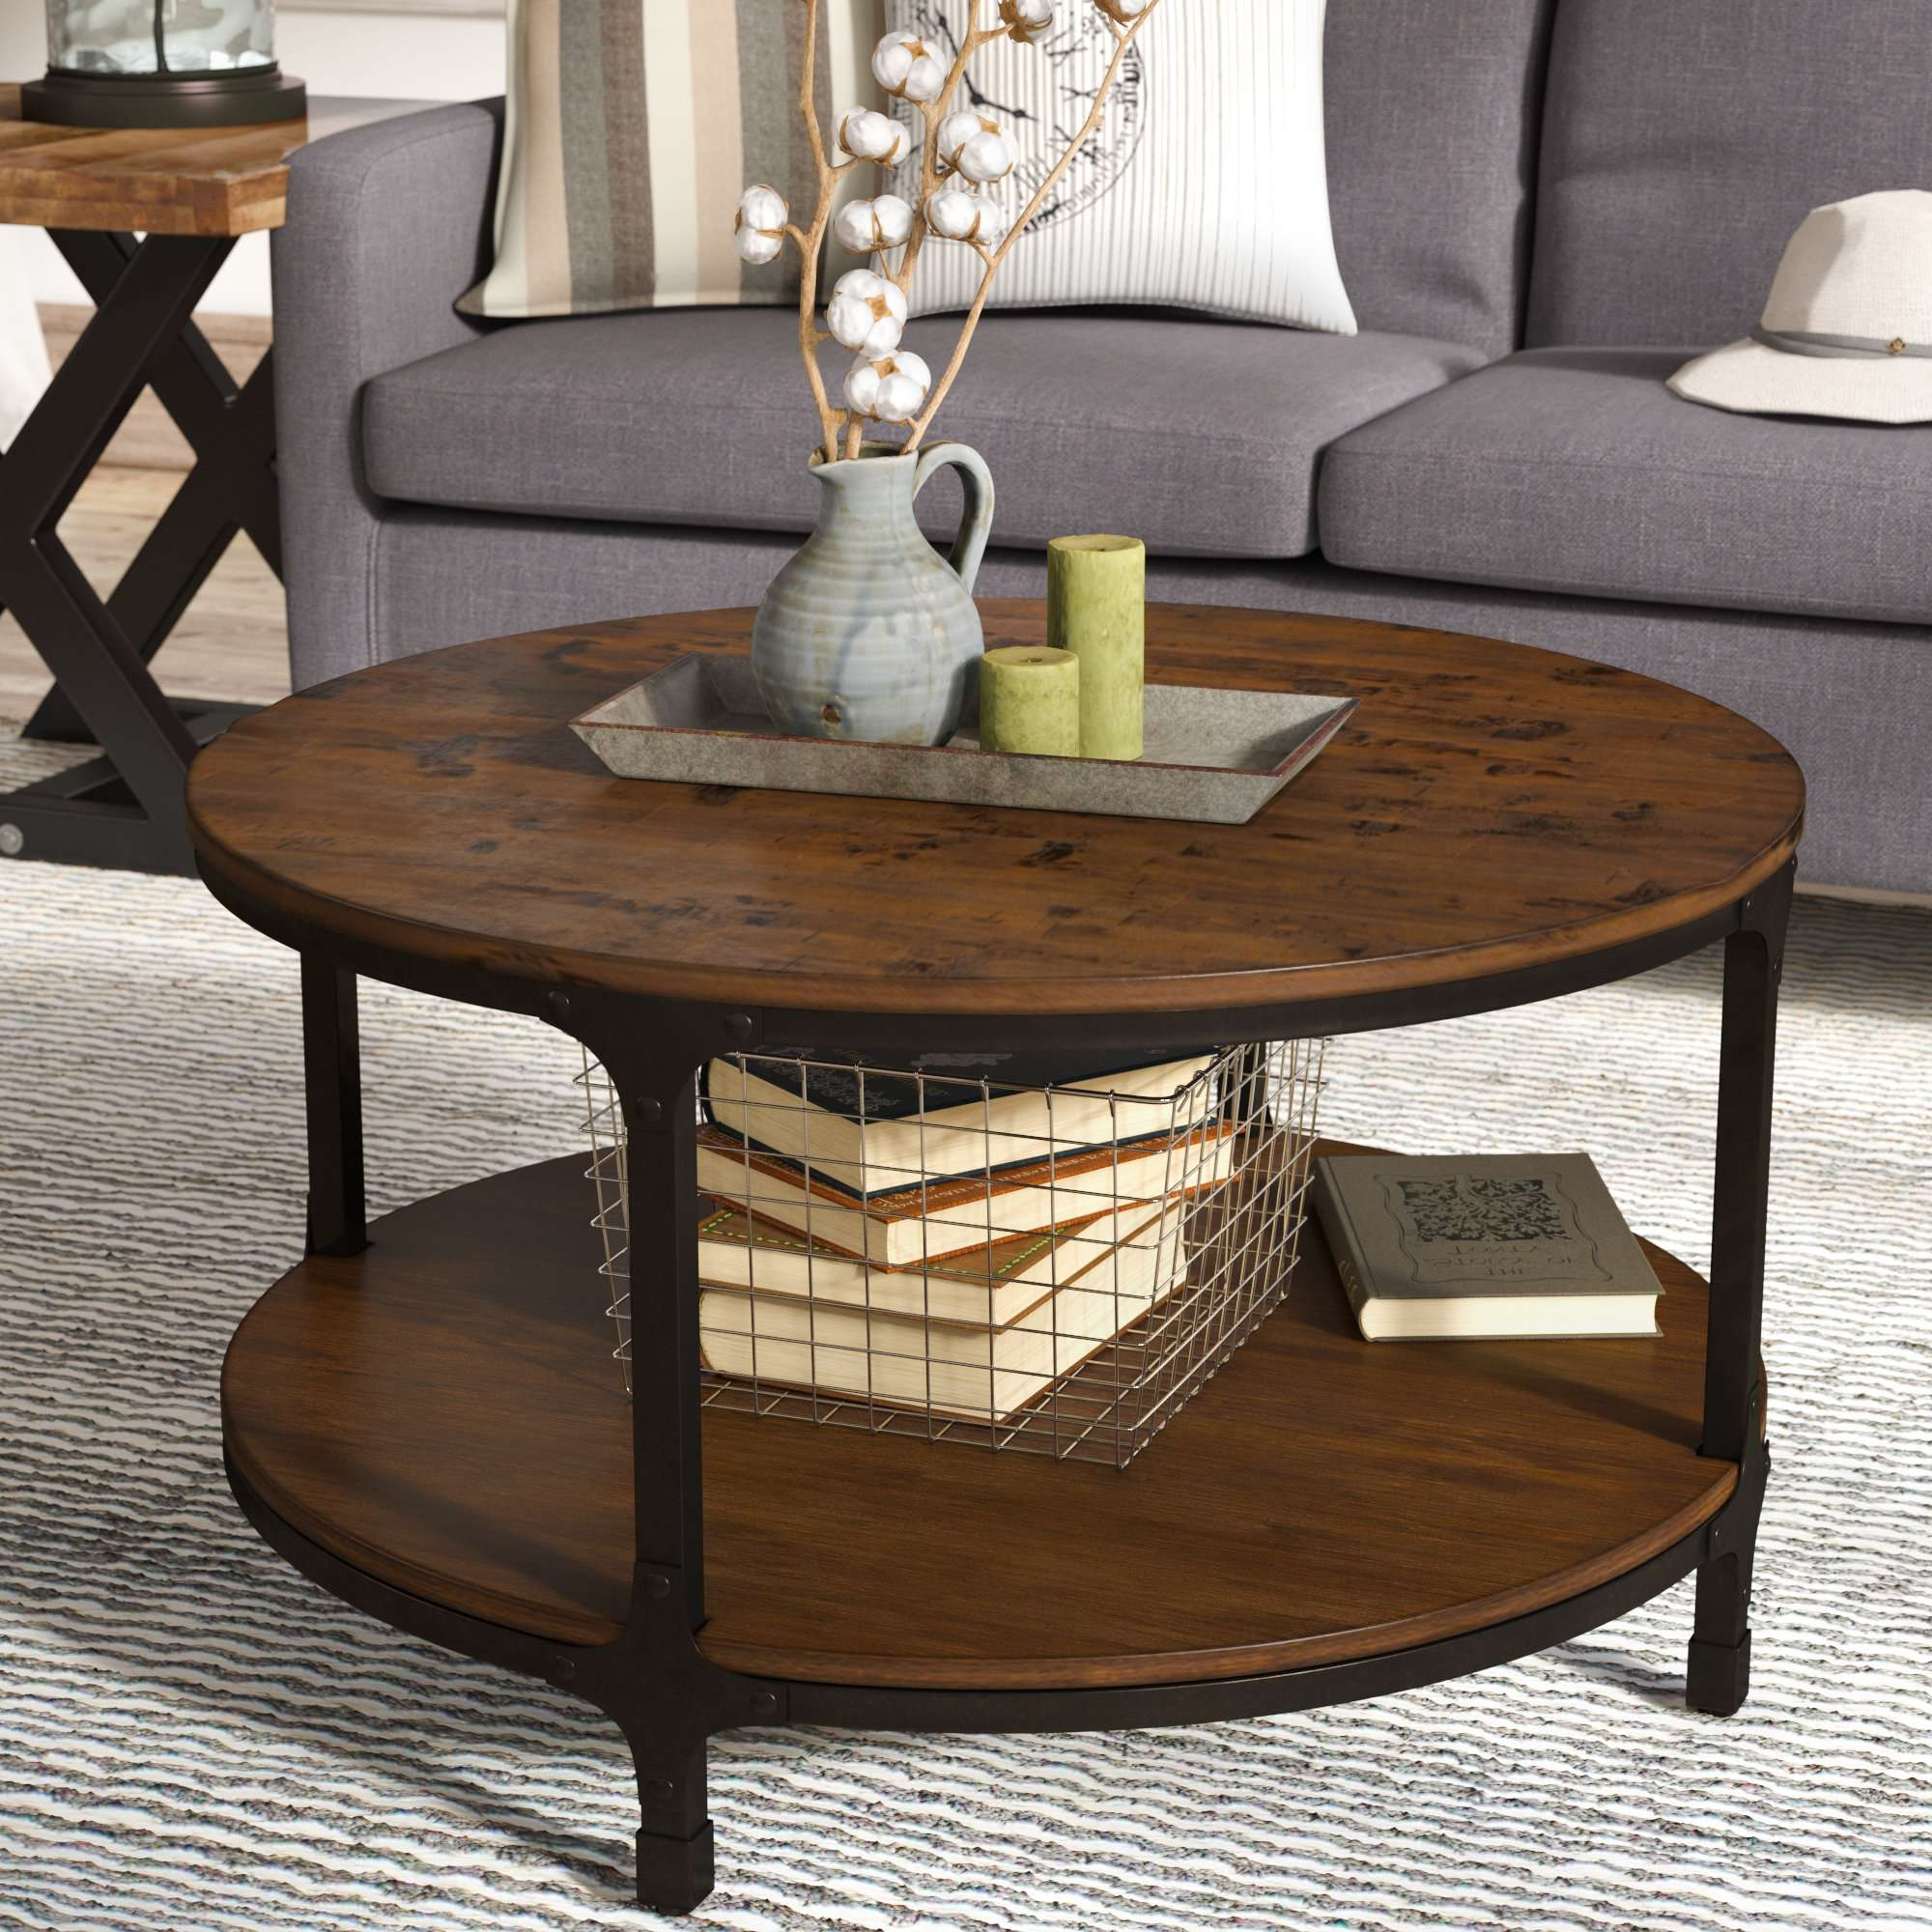 Wayfair For Best And Newest Small Circular Coffee Table (View 17 of 20)